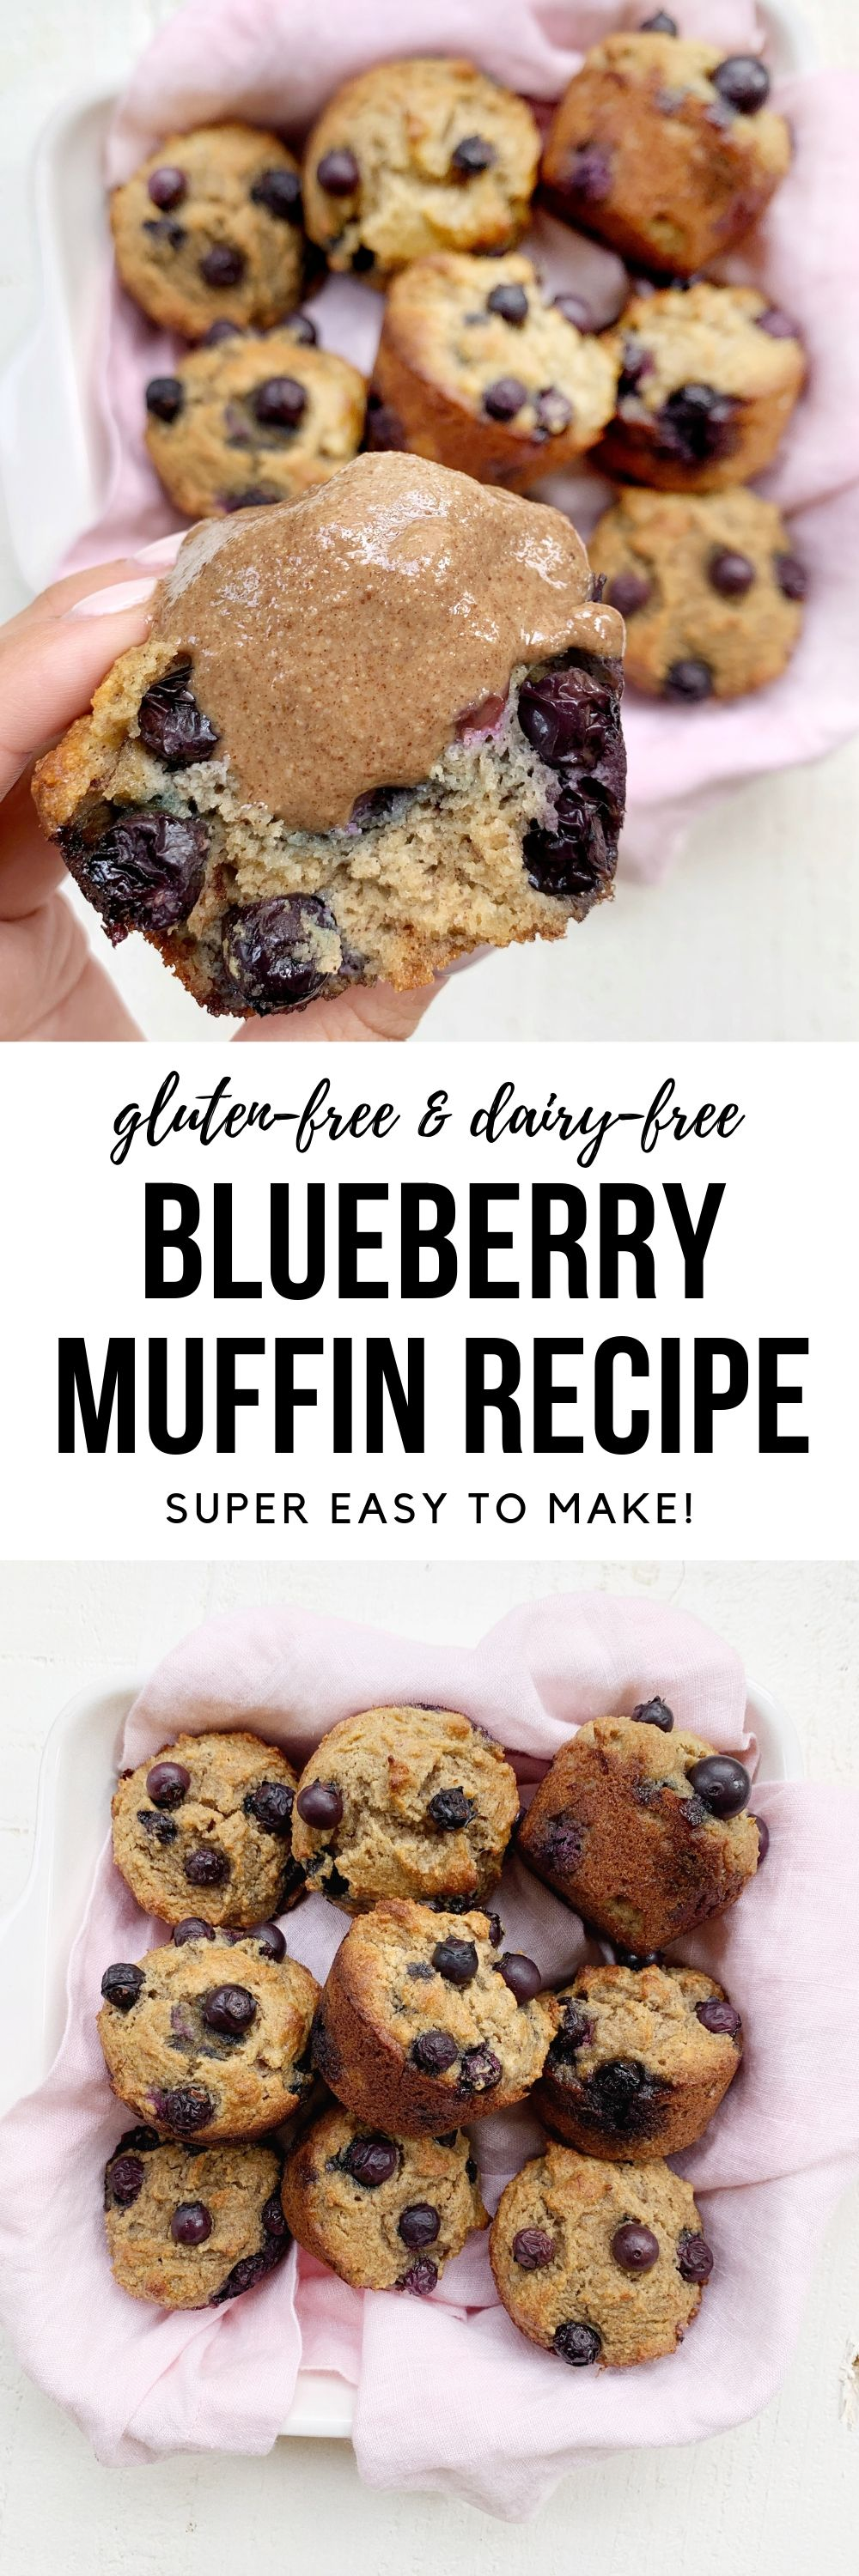 gluten-free & dairy-free blueberry muffin recipe